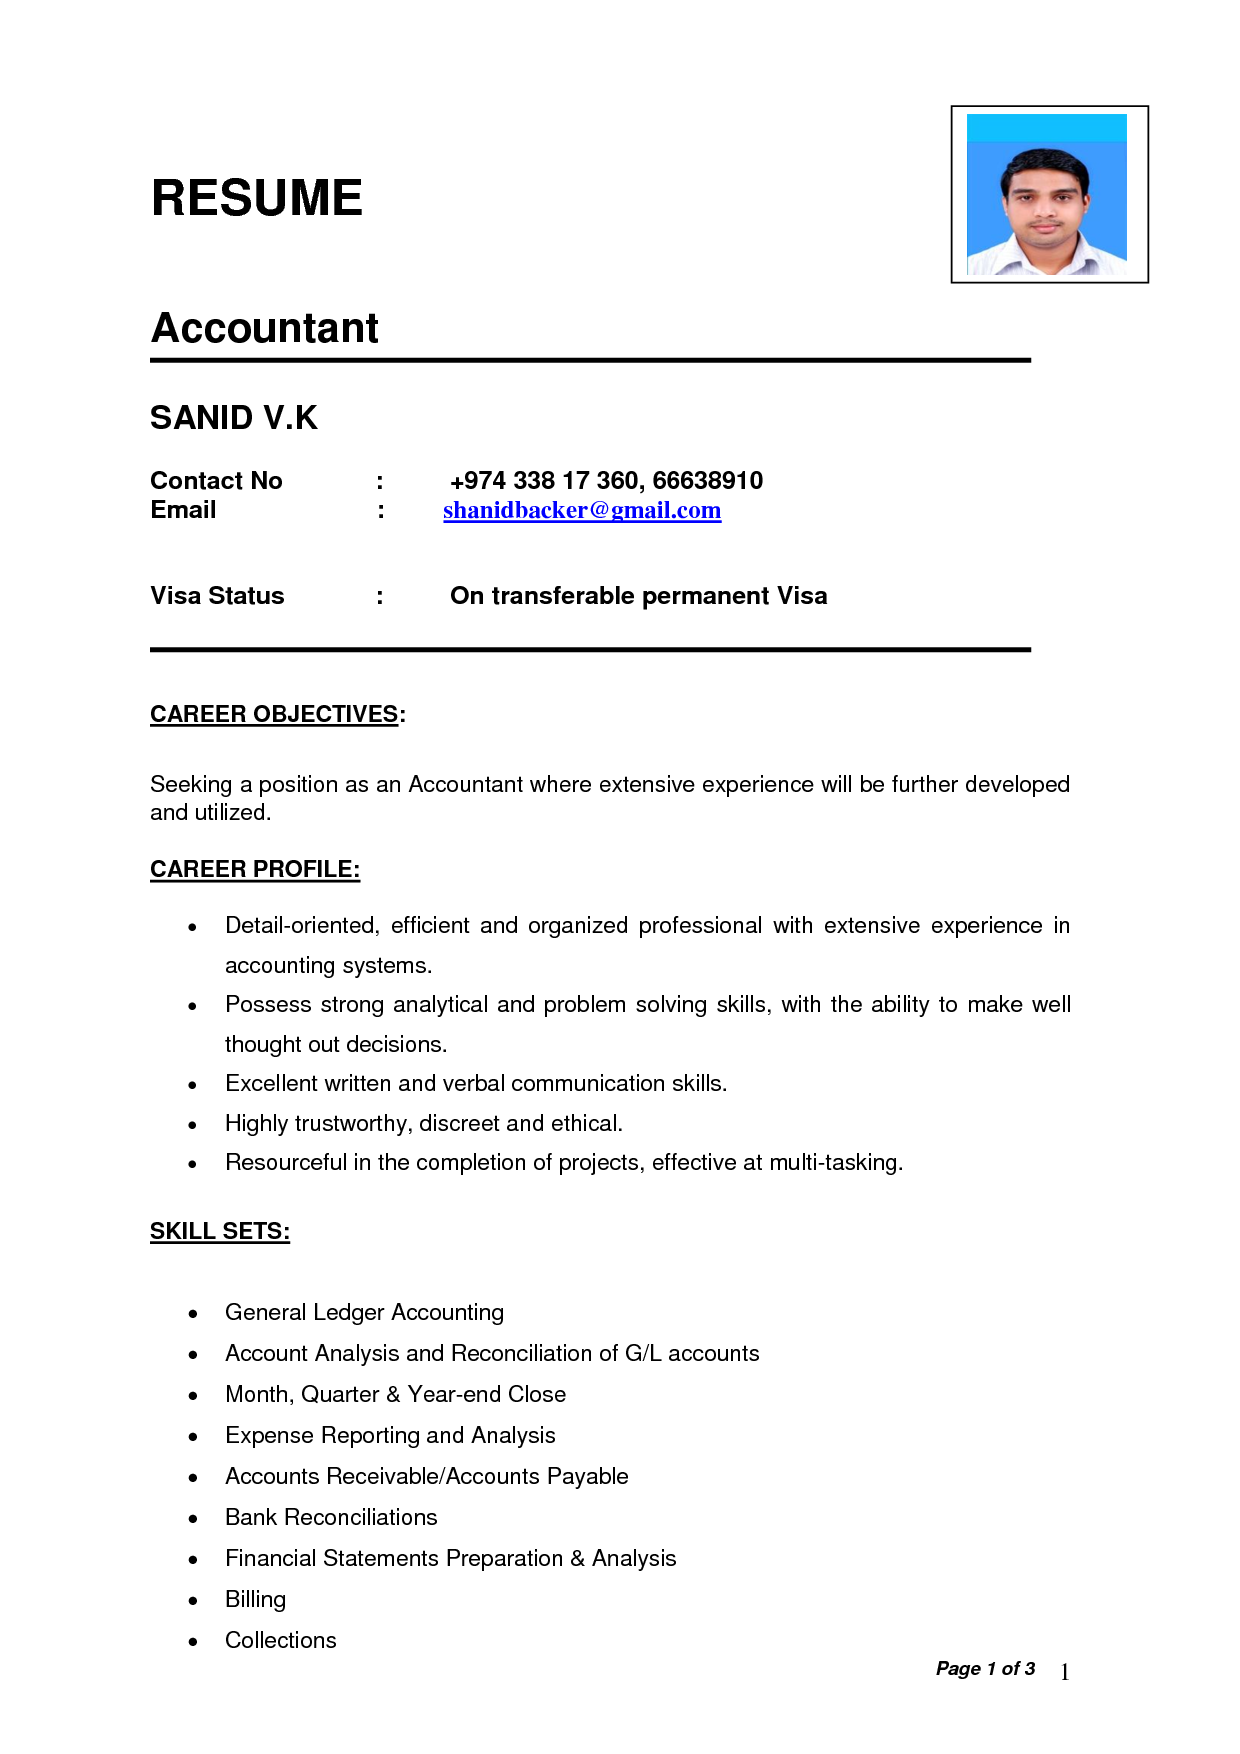 resume format used in india    format  india  resume  resumeformat